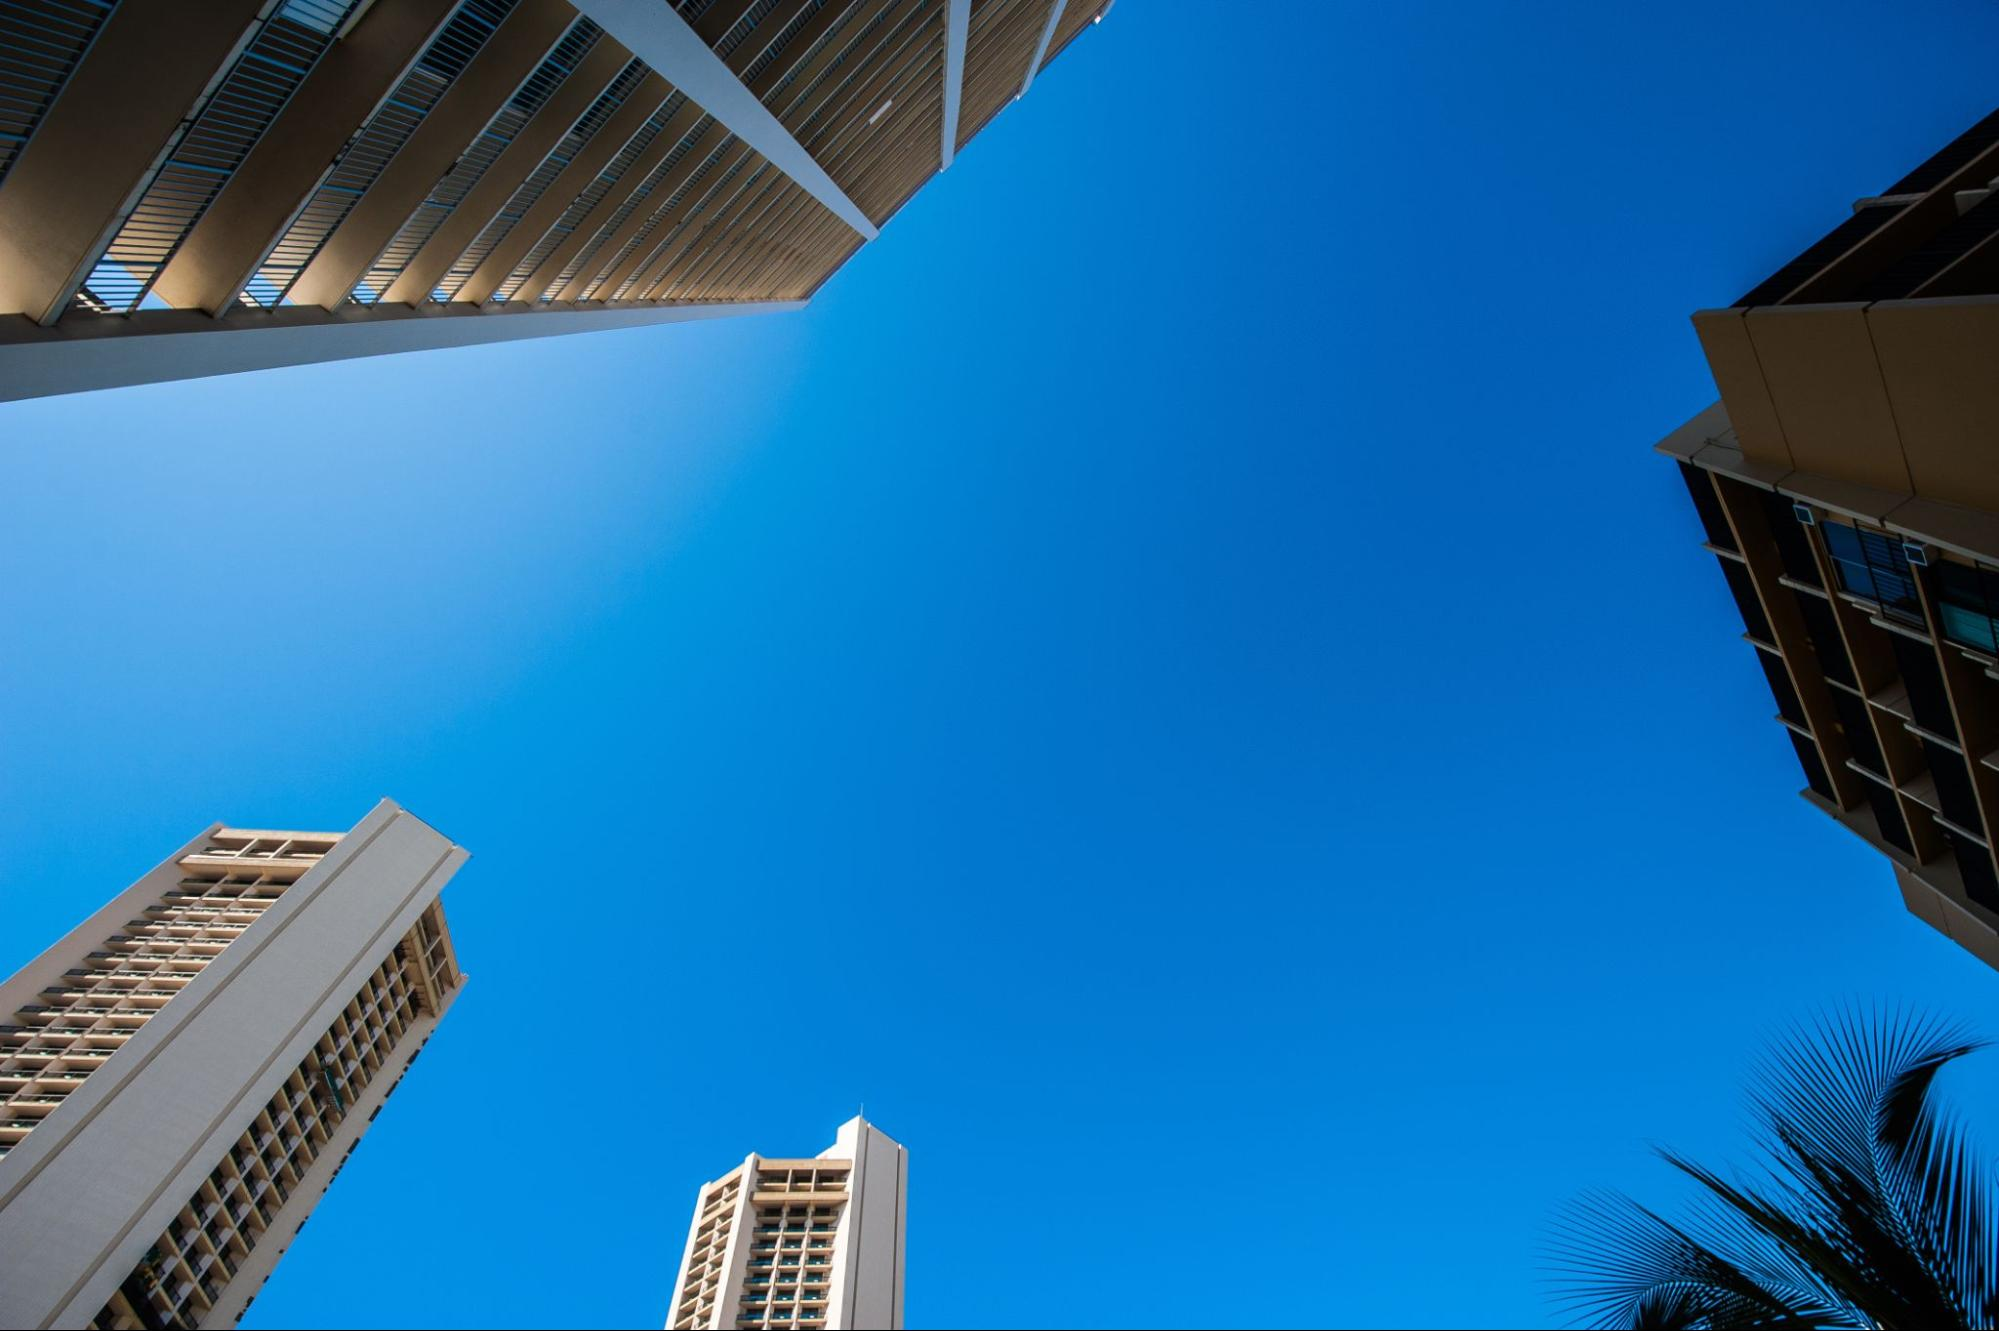 how do timeshares work: Photo of the sky and buildings taken from the ground